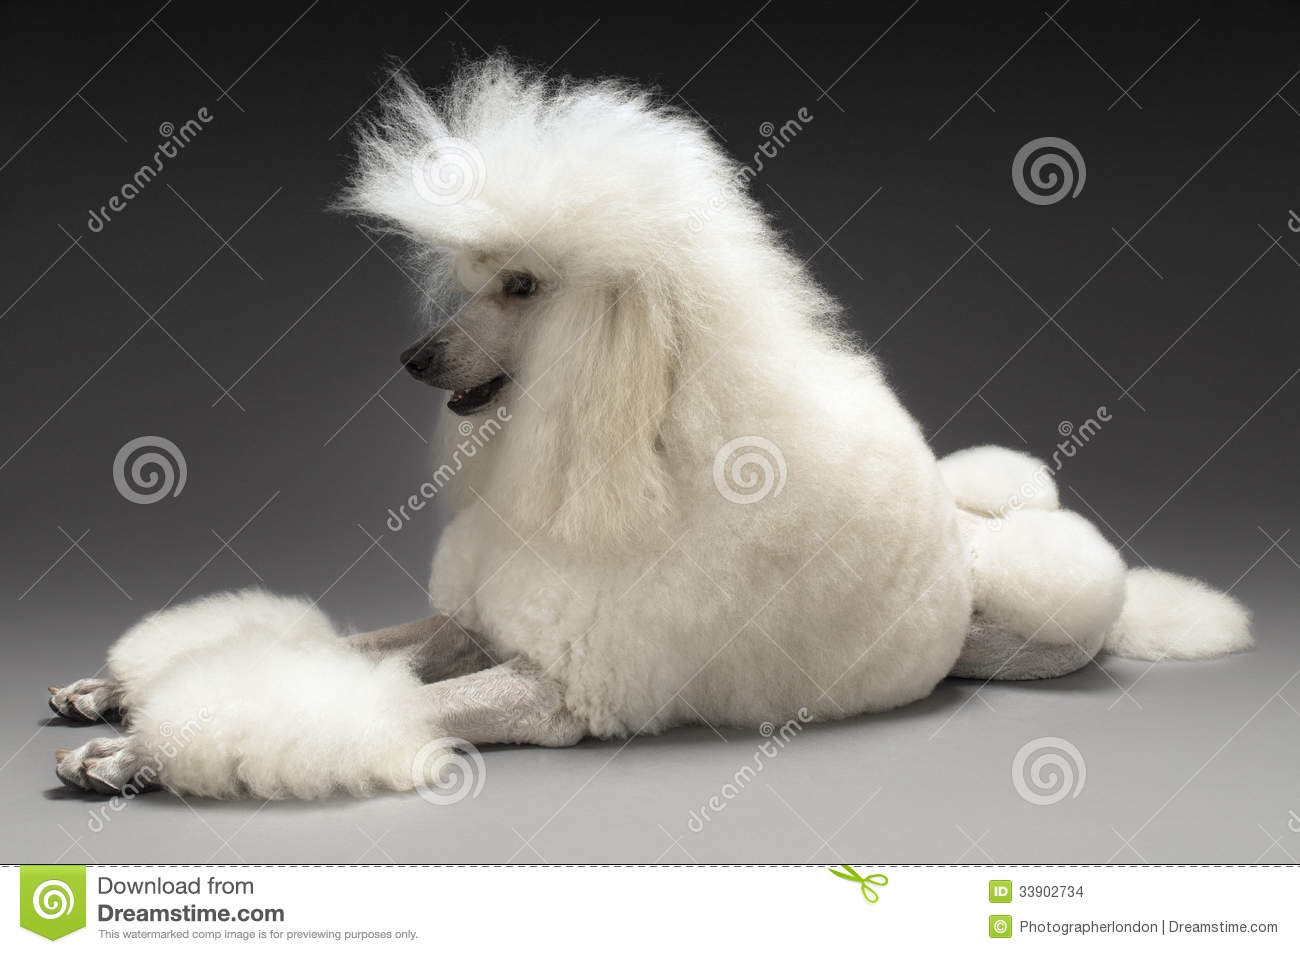 Download Wallpaper Of Cute Puppies White Standard Poodle Stock Images Image 33902734